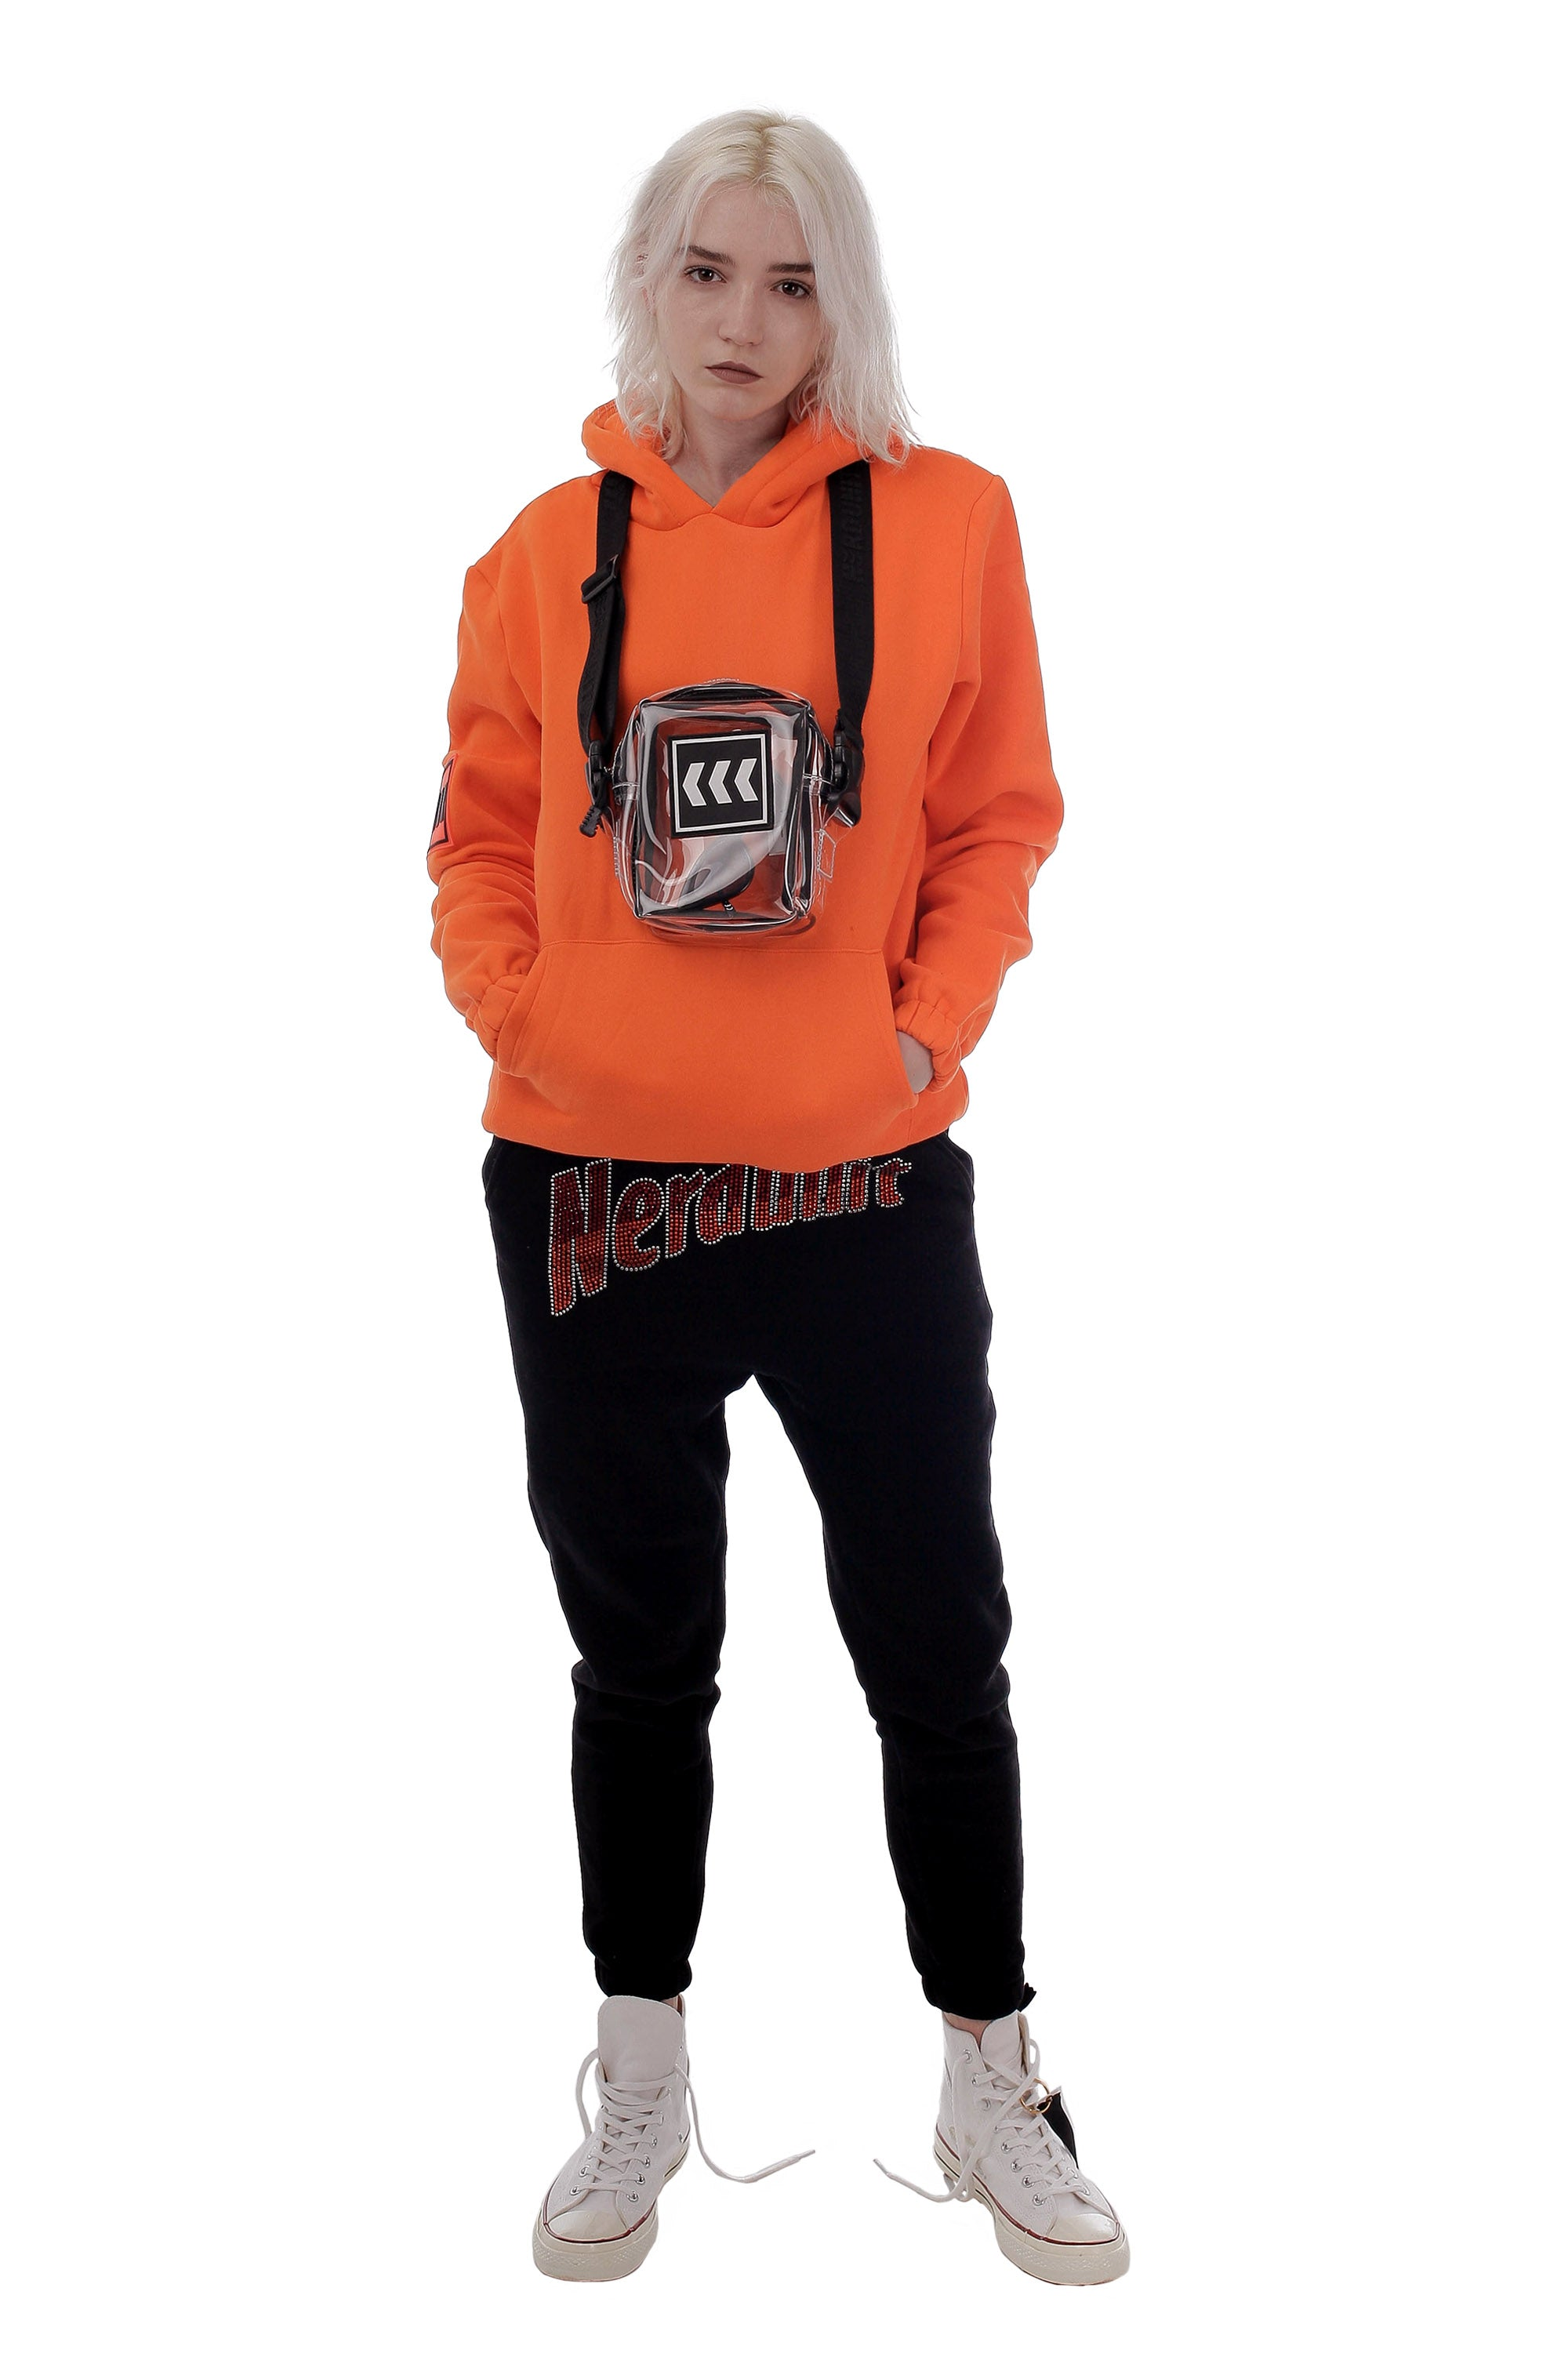 RS WE ARE NU HOODIE | ORANGE (RS WE ARE NERDUNIT HOODIE - オレンジ)